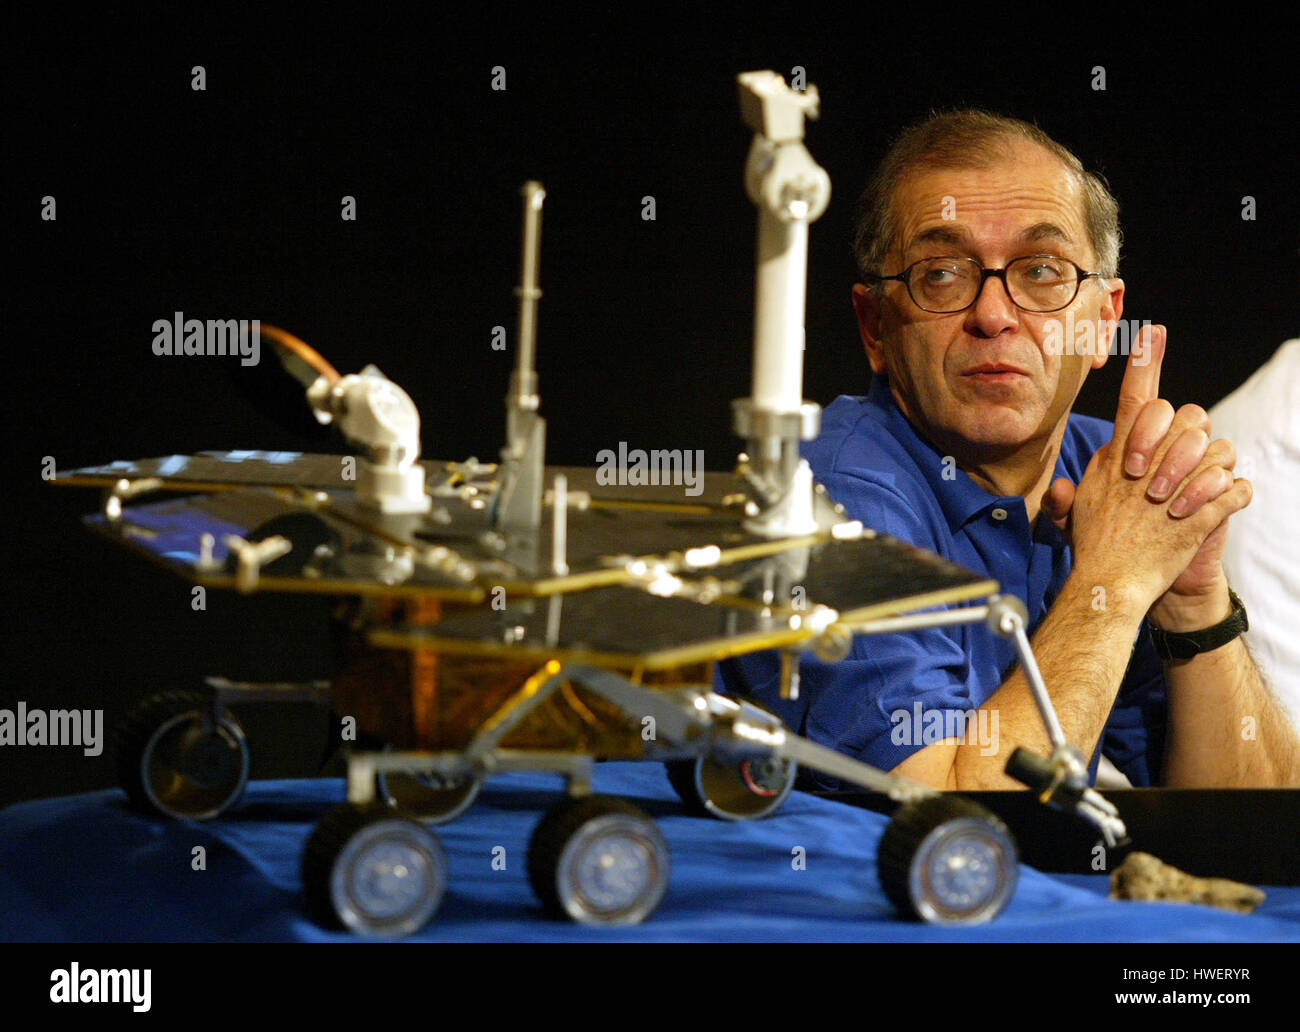 Charles Elachi, director of NASA's Jet Propulsion Laboratory looks at a model of the rover Spirit during a press - Stock Image